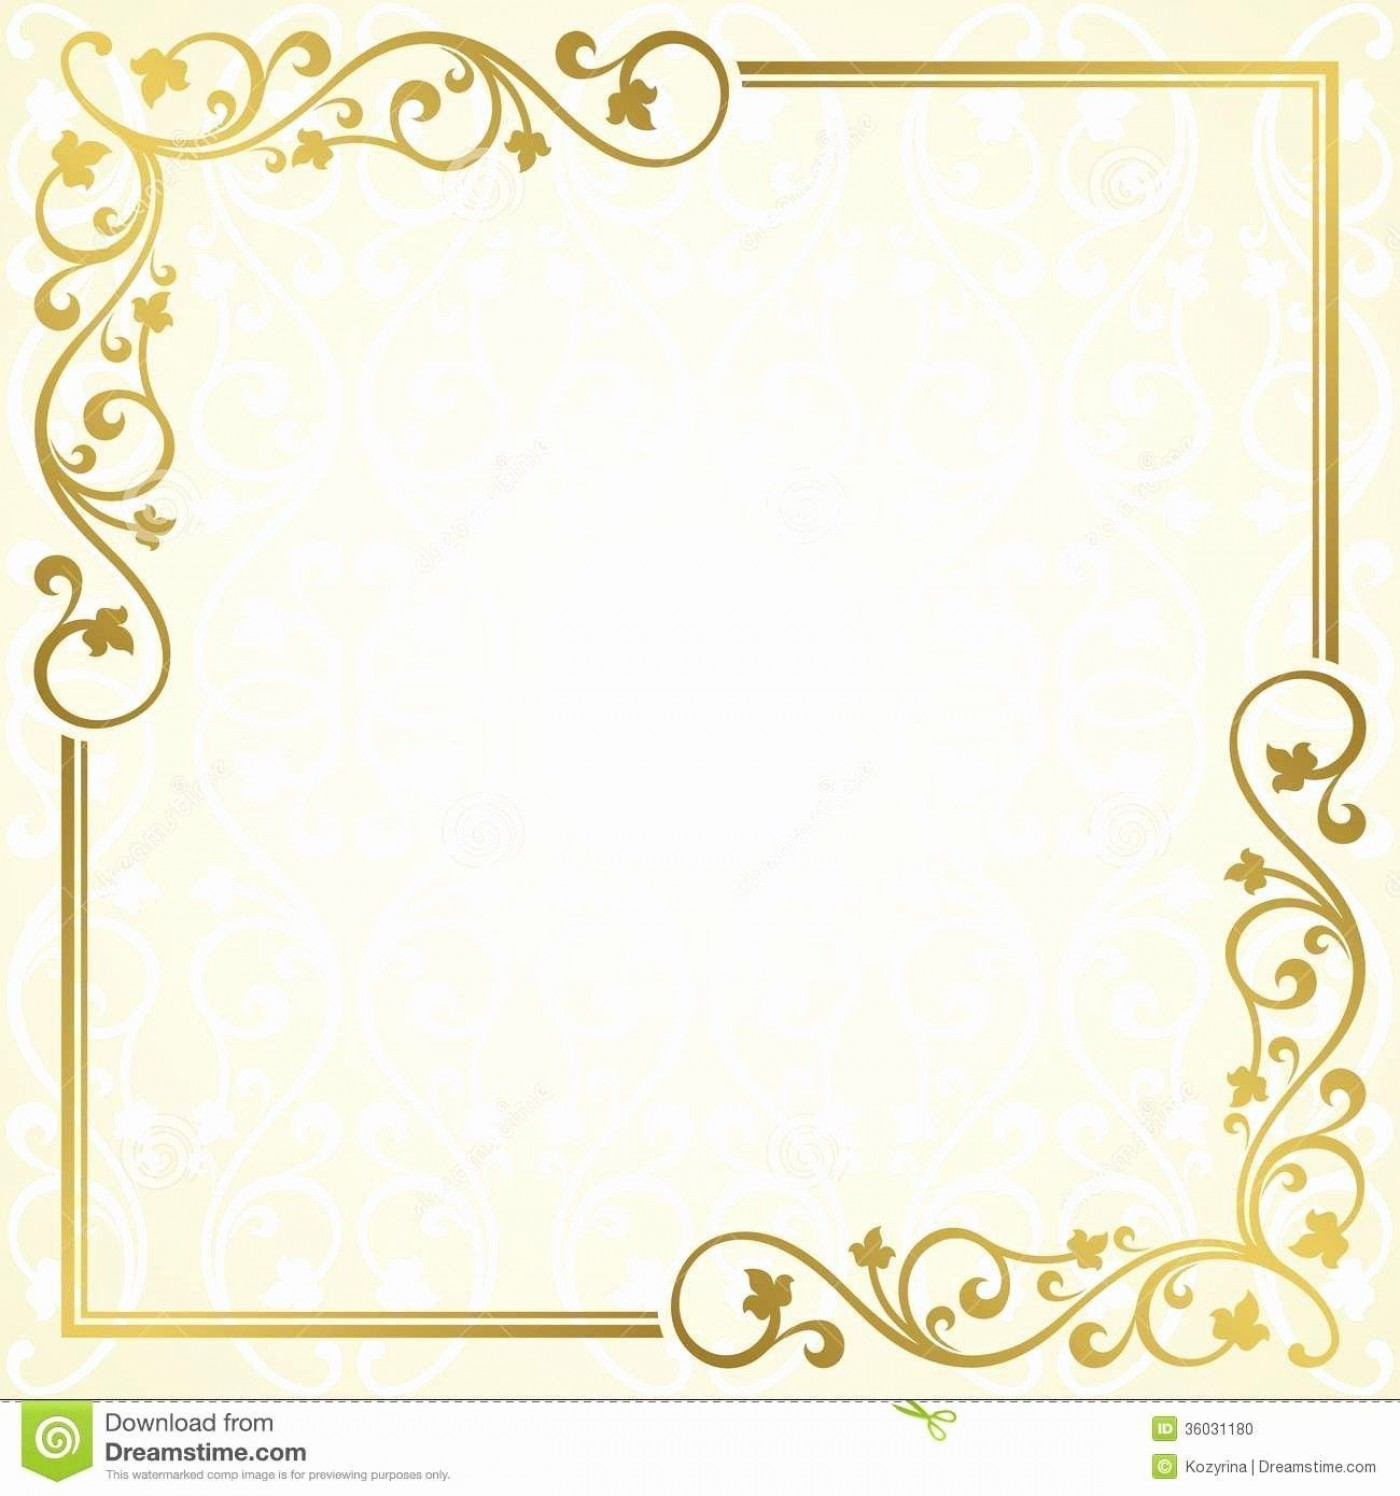 005 Shocking Free Download Invitation Card Format Picture  Marriage In Word Psd Wedding1400